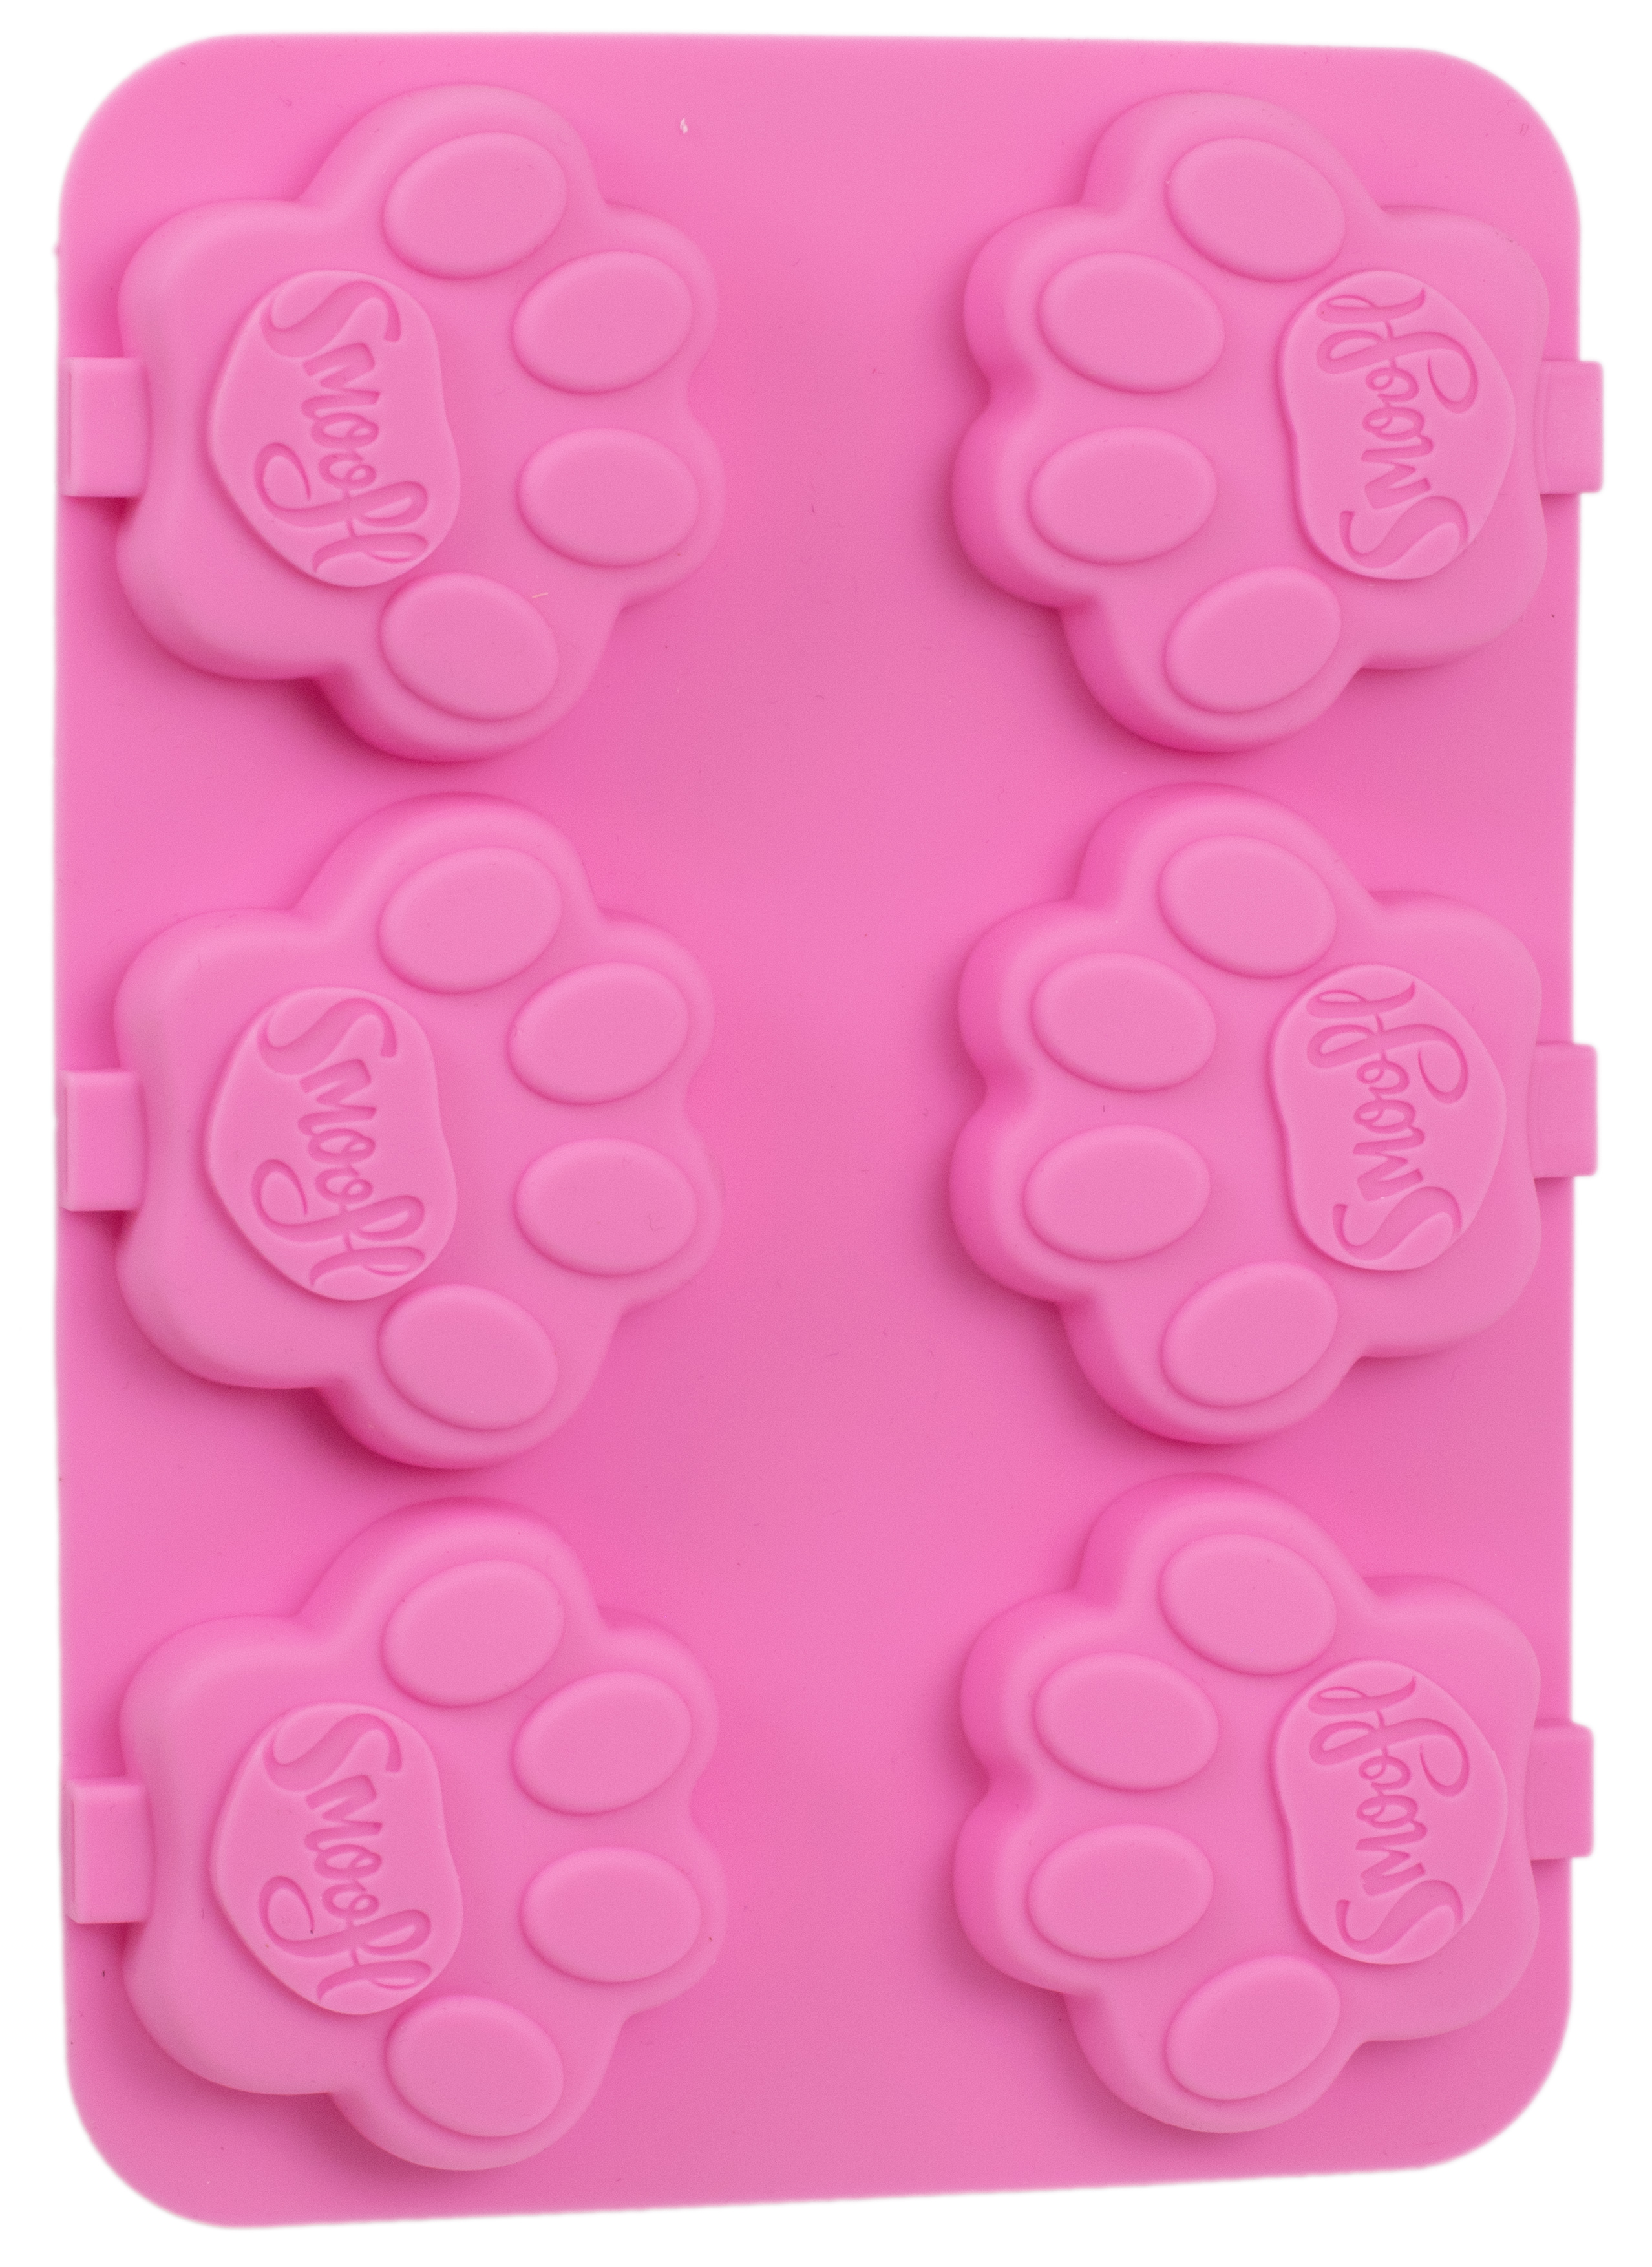 e3a3d32683c Silicone hondenpoot vorm - Sneakers and Paws